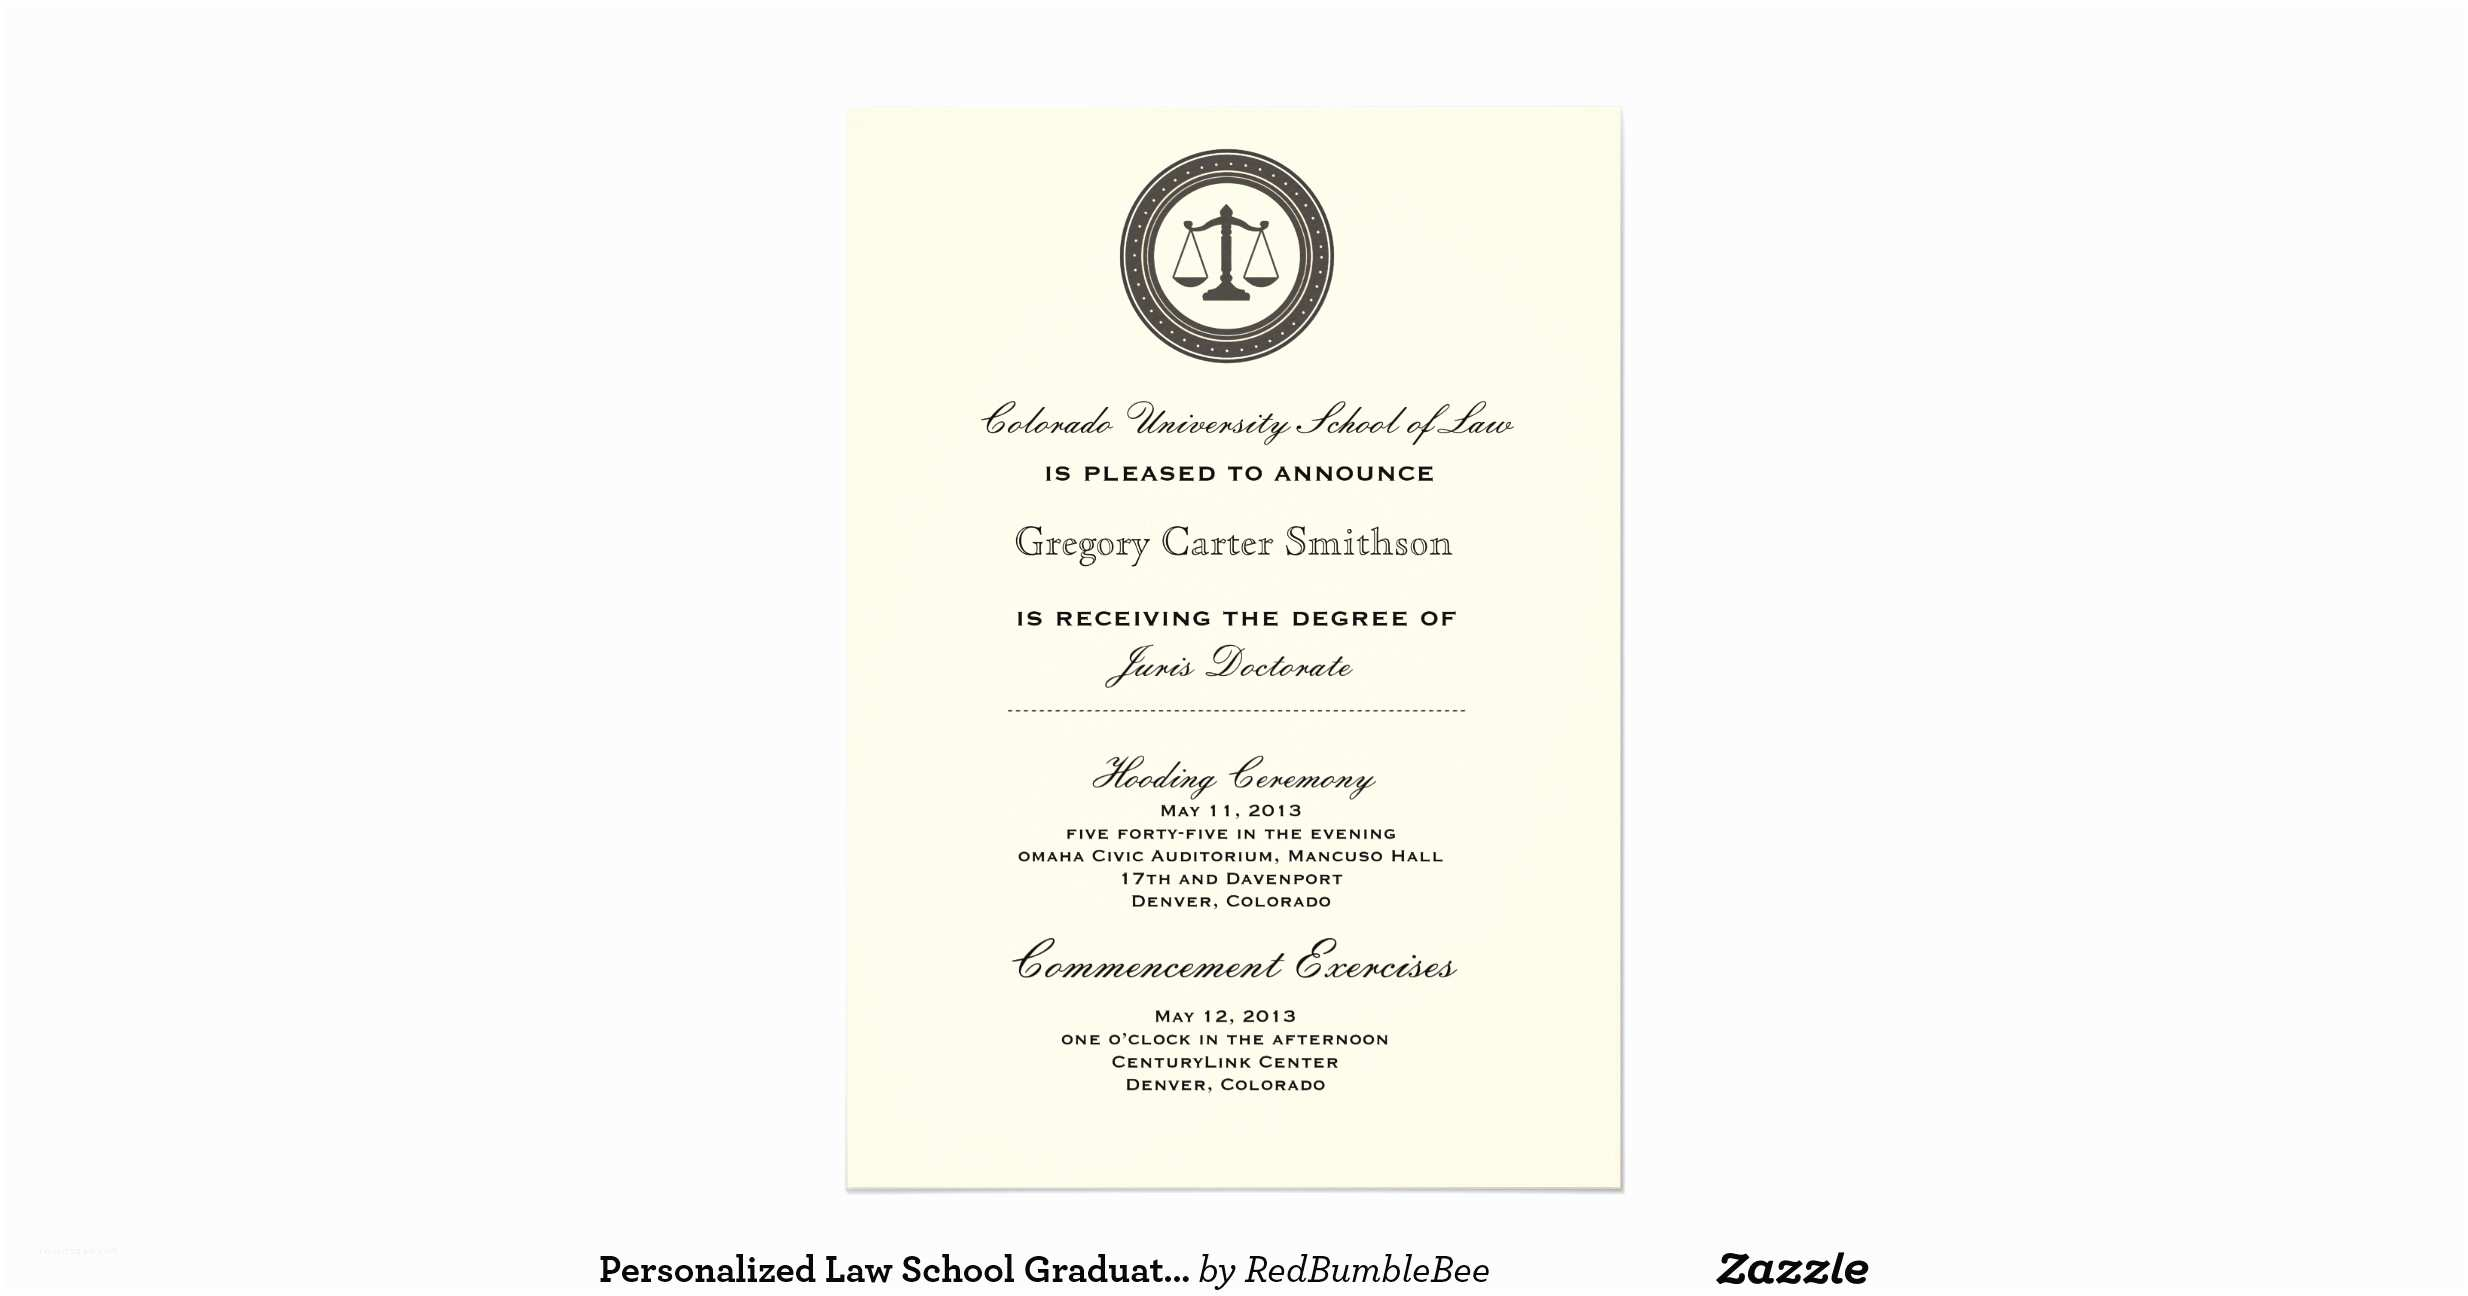 Personalized Graduation Invitations Personalized Law School Graduation Announcements